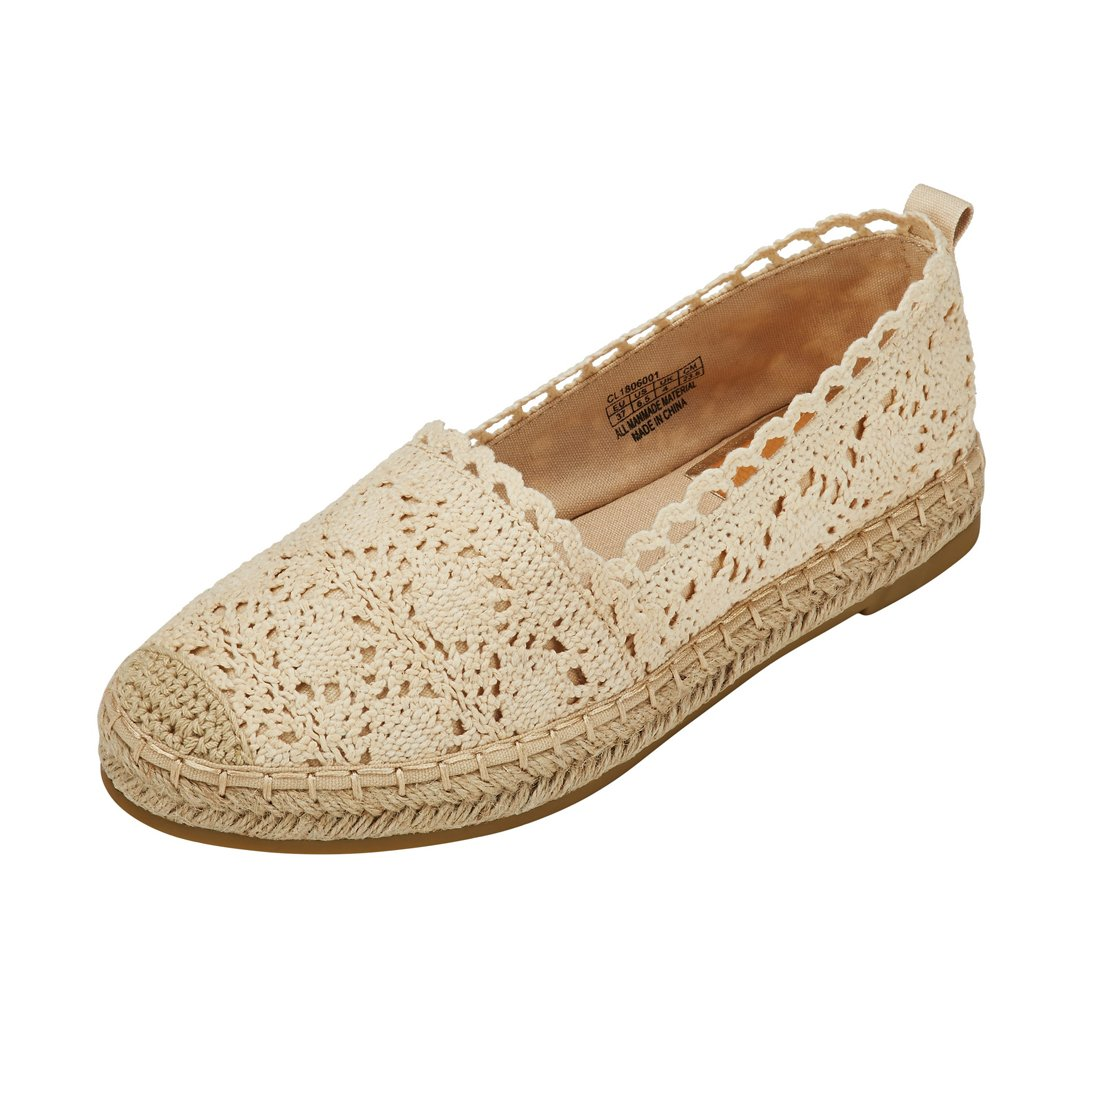 Espadrille Sneakers for Women: Hollow Canvas Casual Flats Classic Slip-On Comfortable Shoes 8 B(M) US